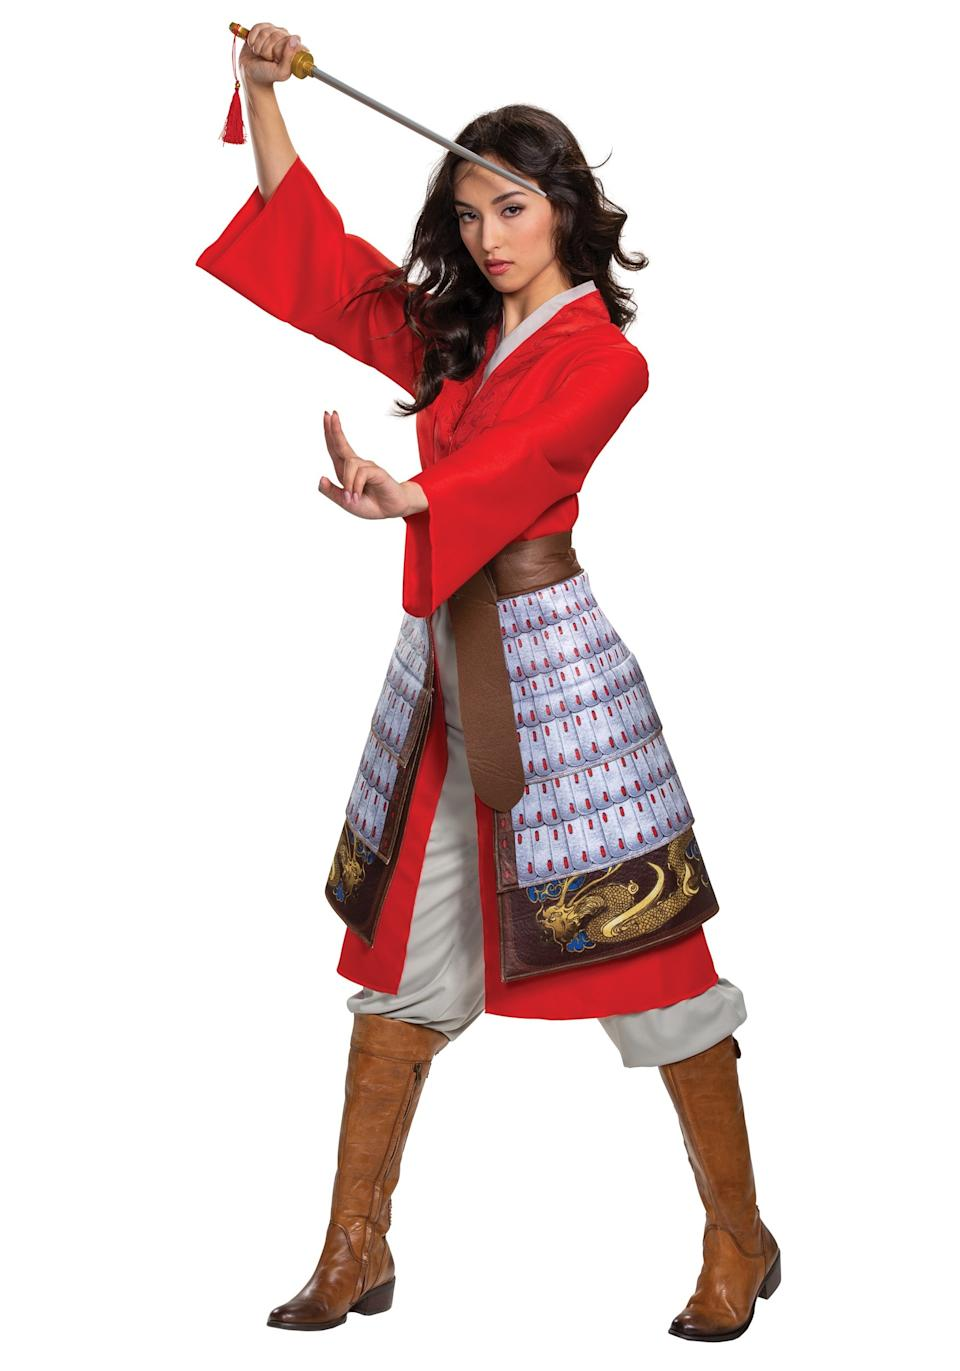 Mulan. Photo via halloweencostumes.com